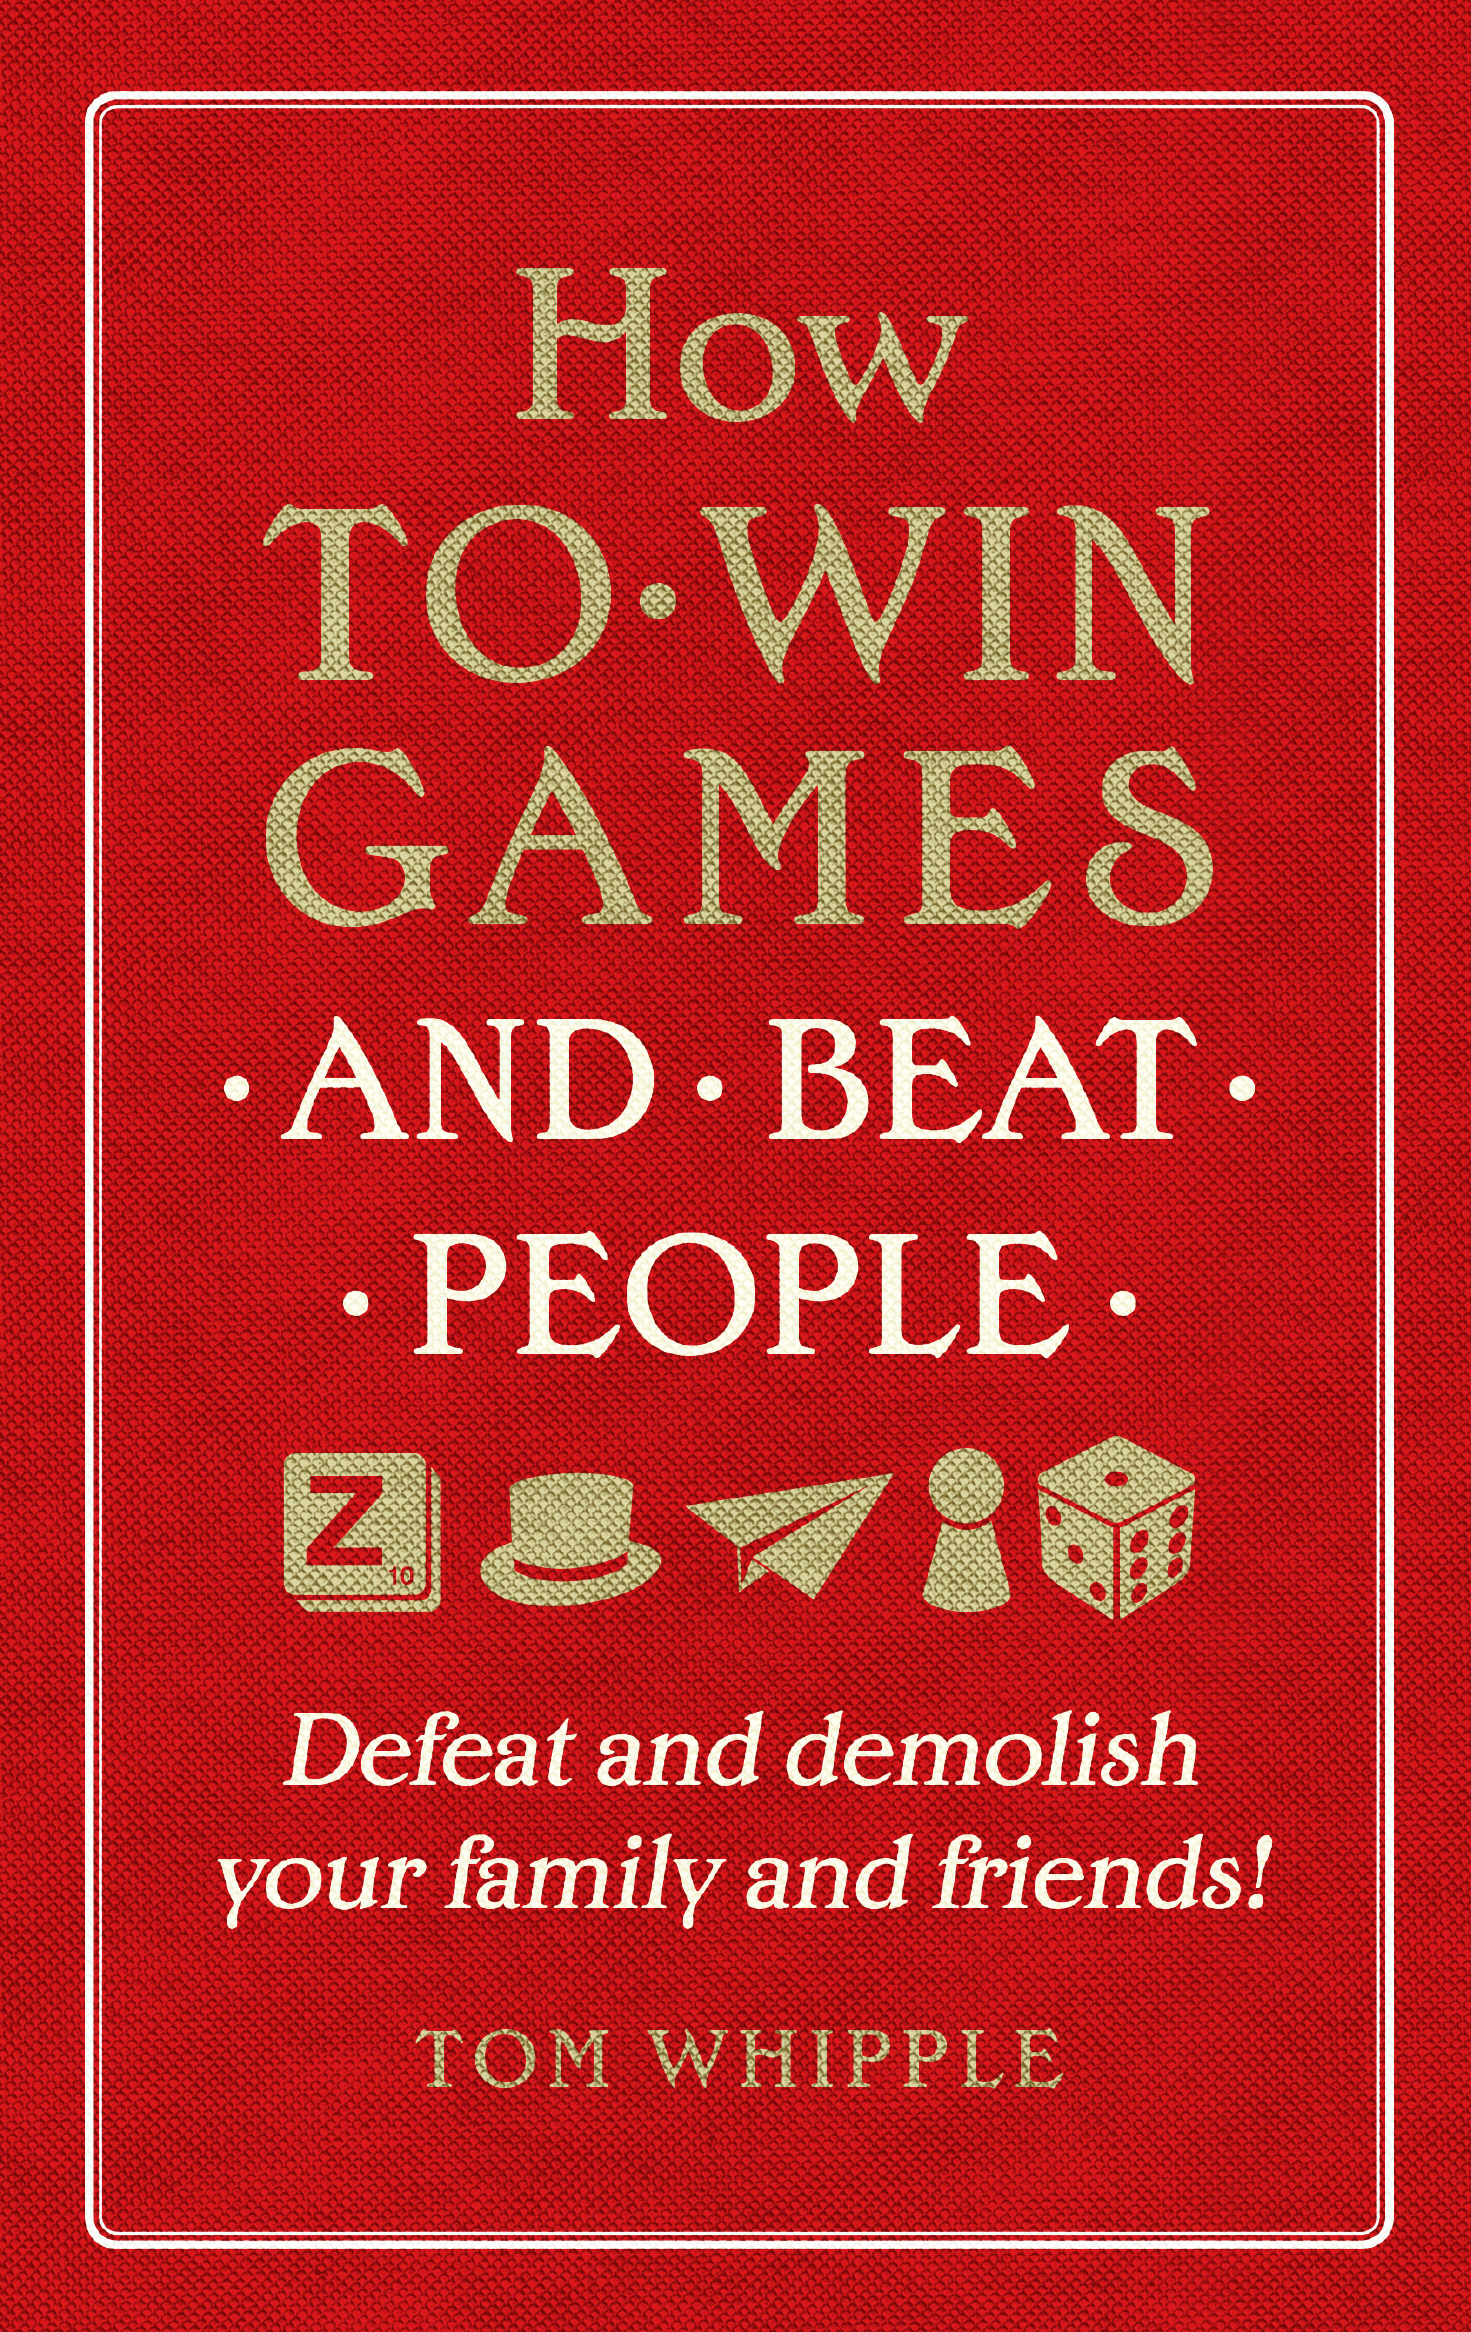 How To Win Games and Beat People Book Jacket